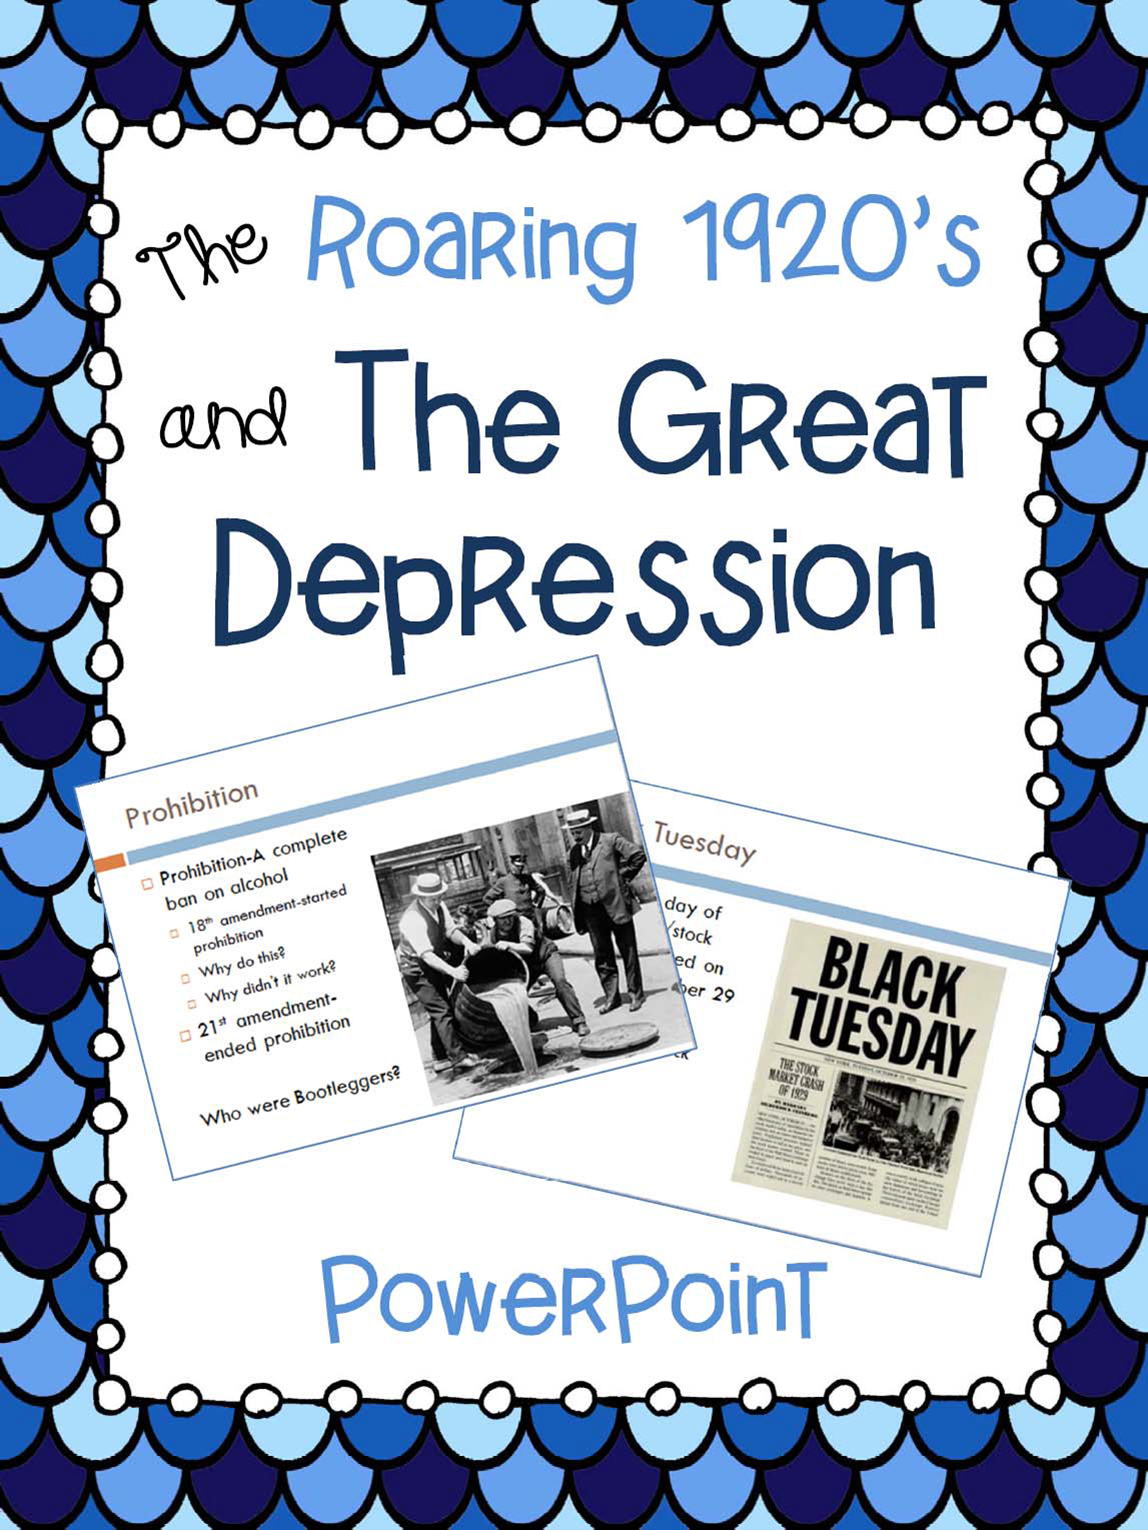 great depression the causes of the great depression dbq u s the roaring 1920 s and the great depression powerpoint presentation aligned 5th grade social studies